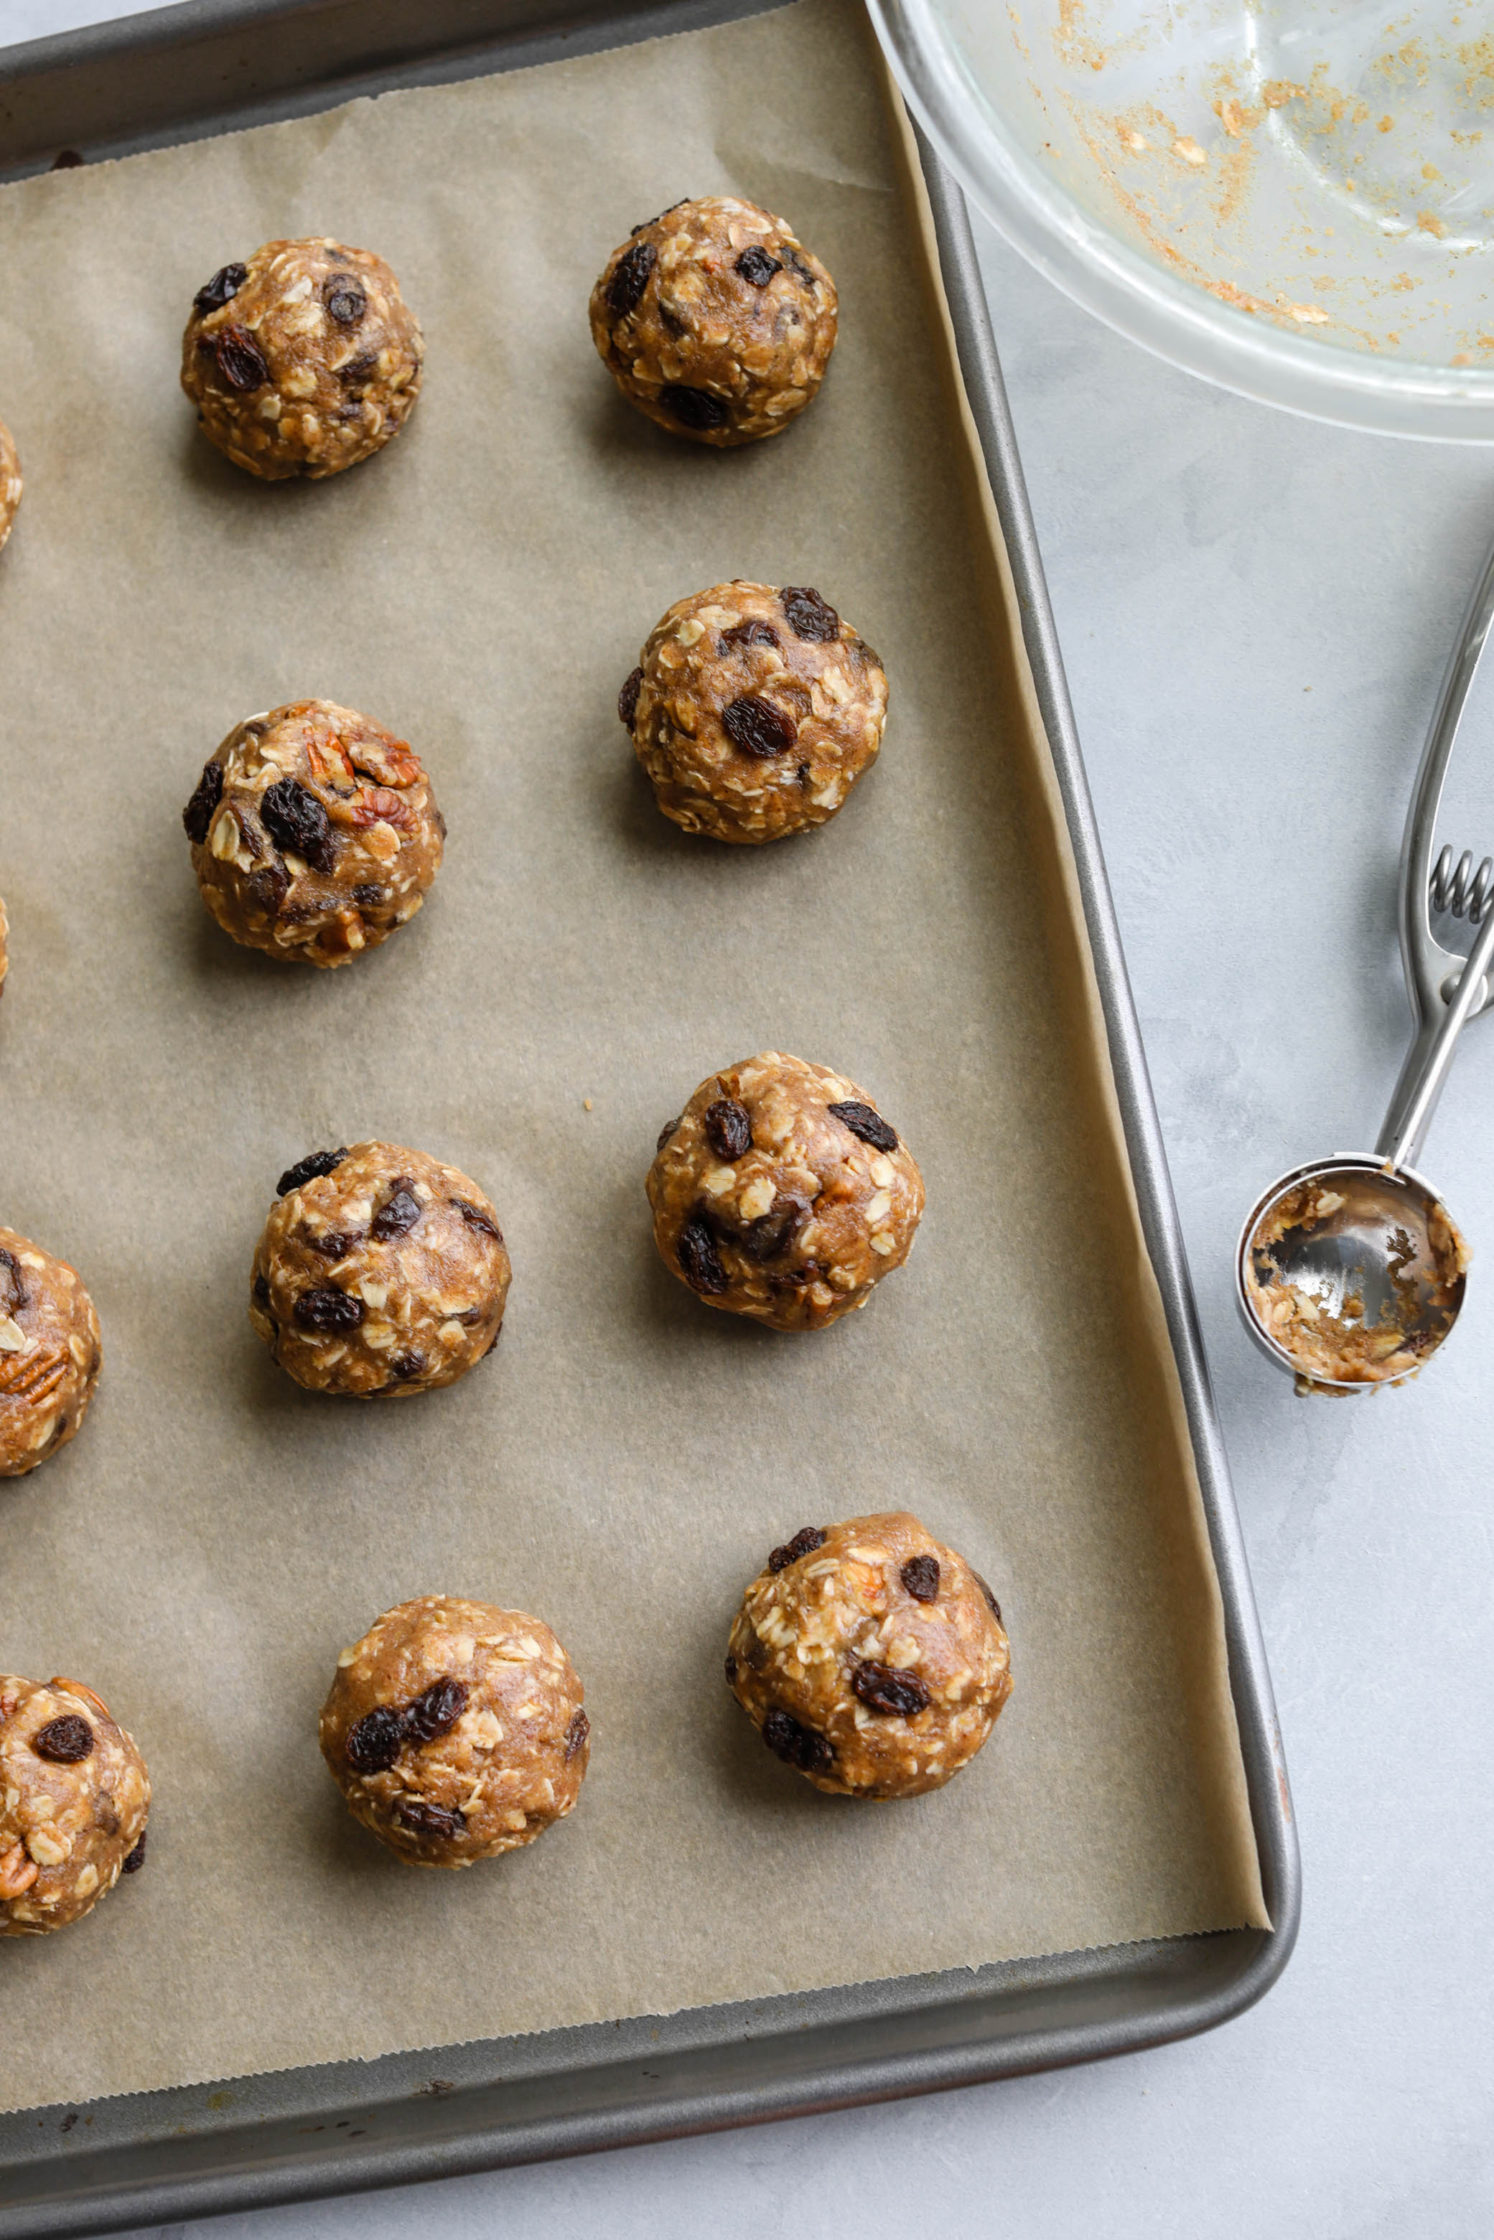 Oatmeal Raisin Pecan Cookies (Oil-Free!) rolled into balls